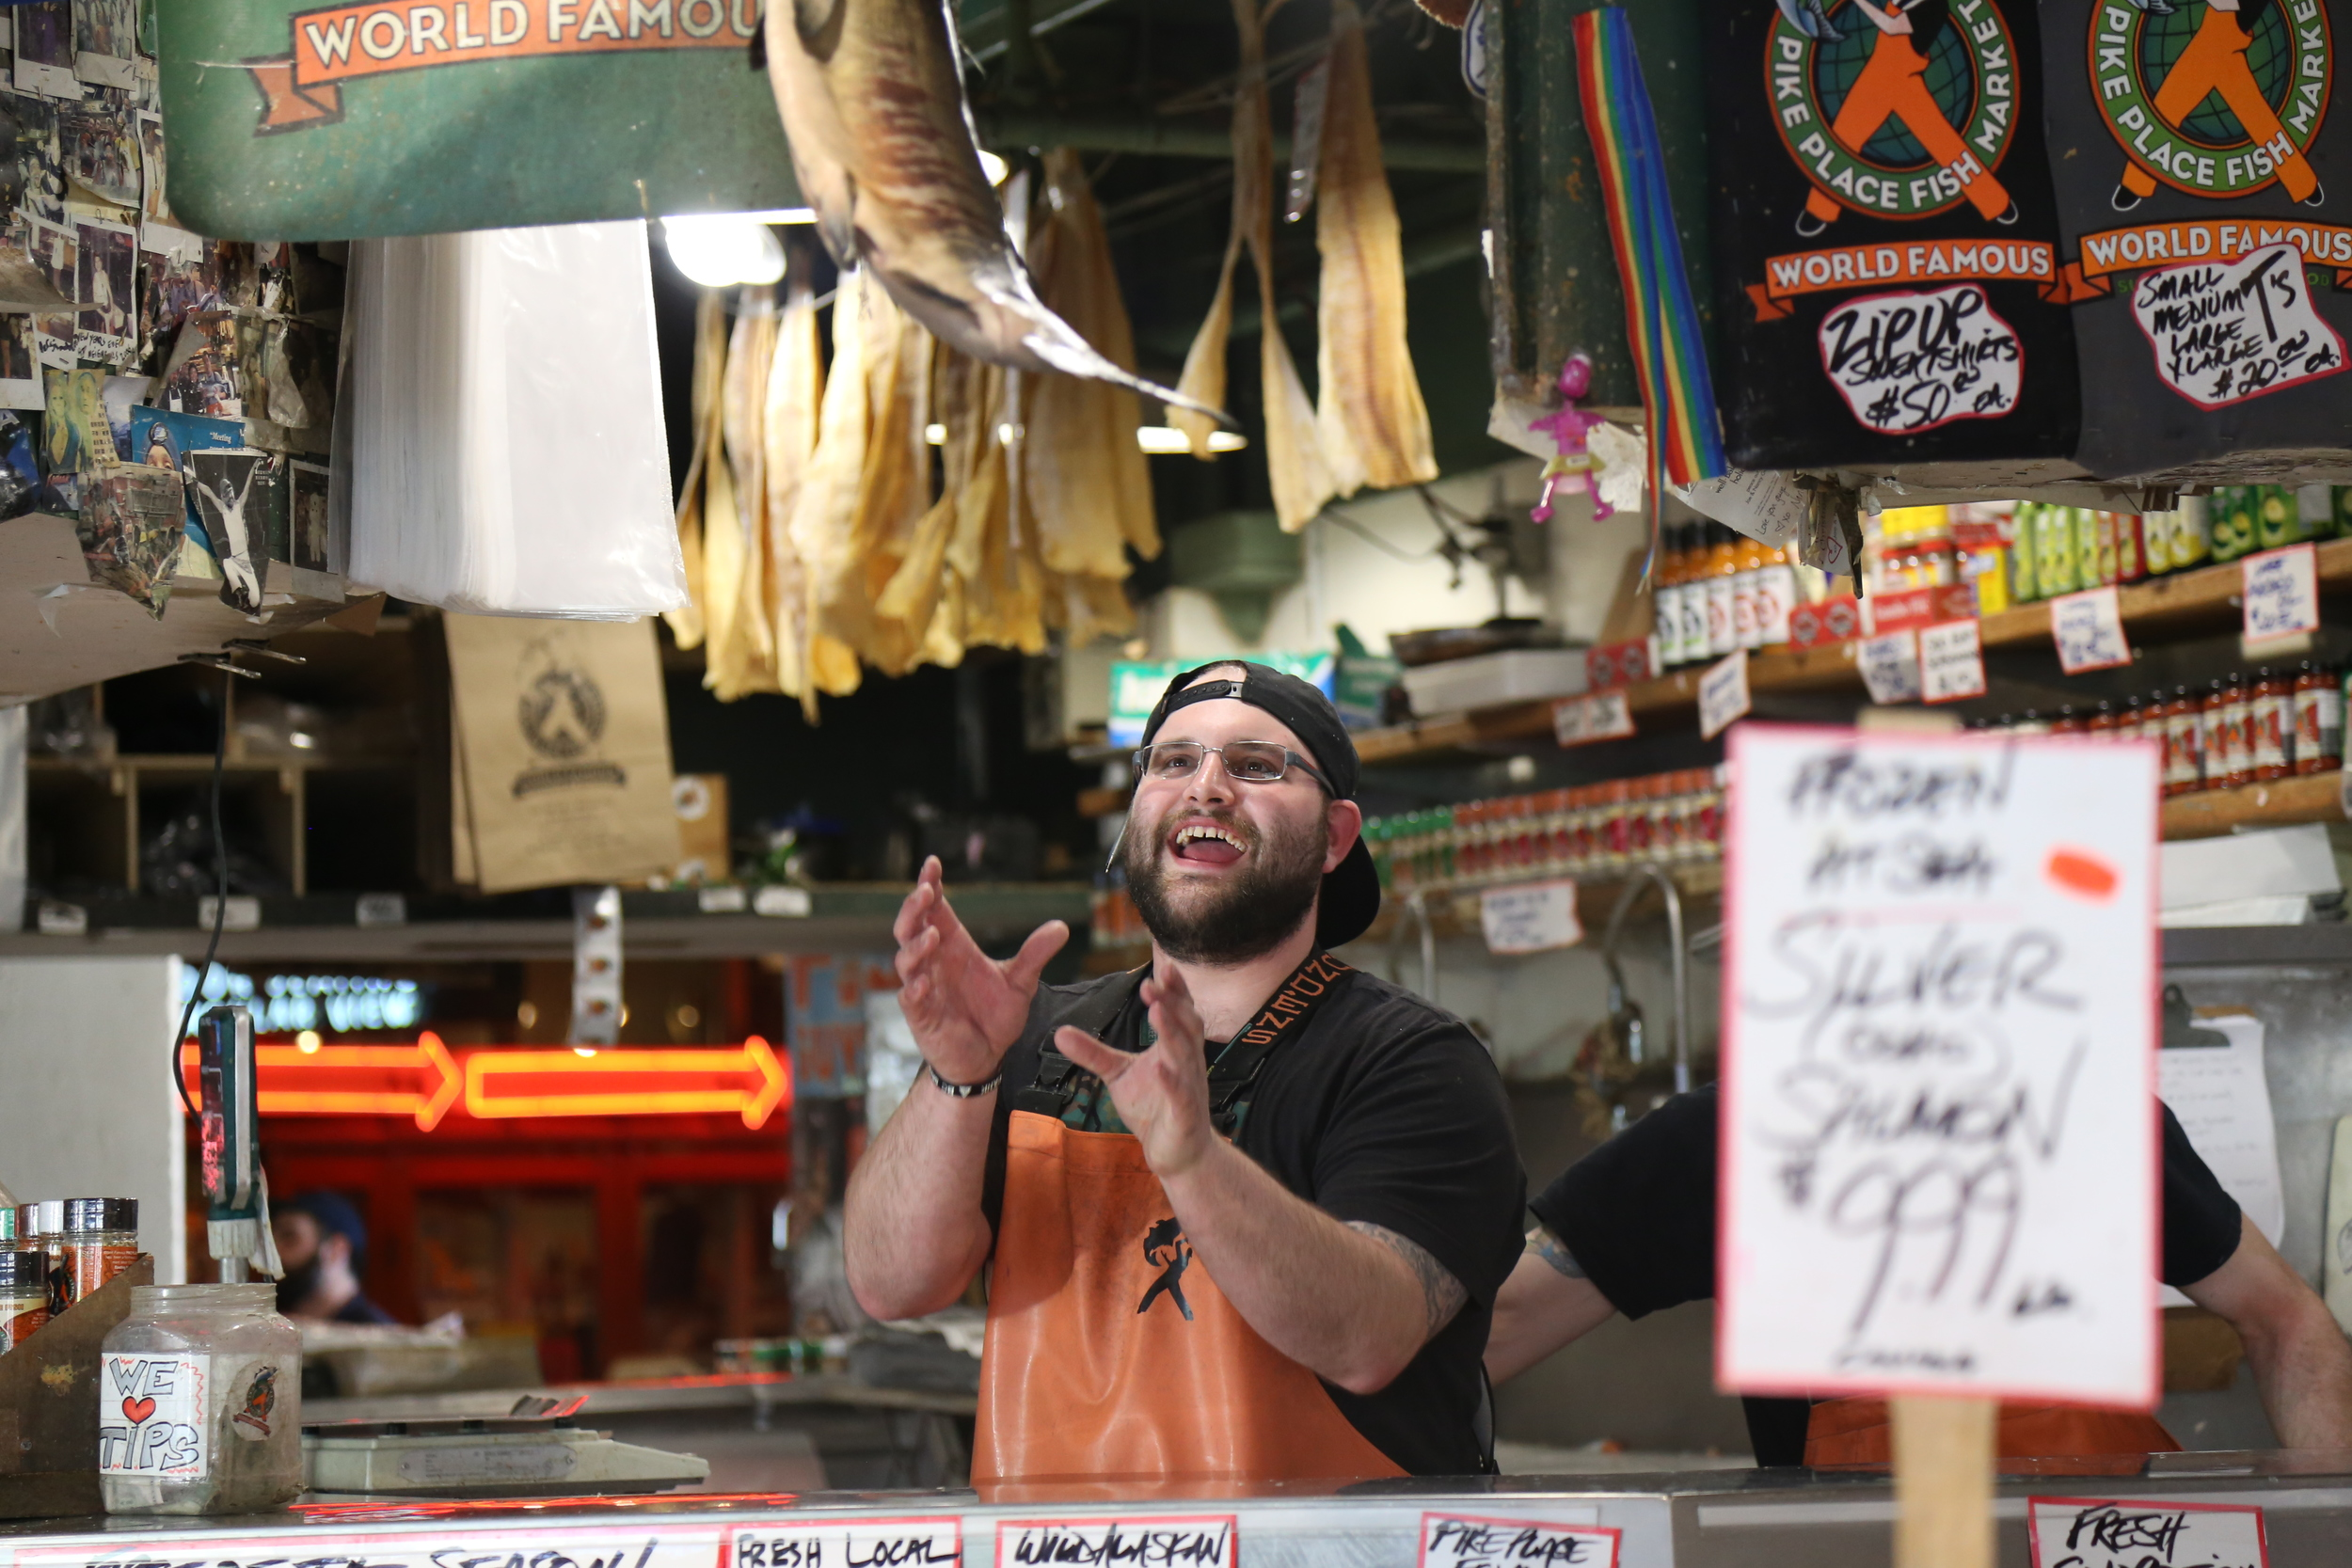 Watching the guys throw fish is one of our favorite things to do at the market.